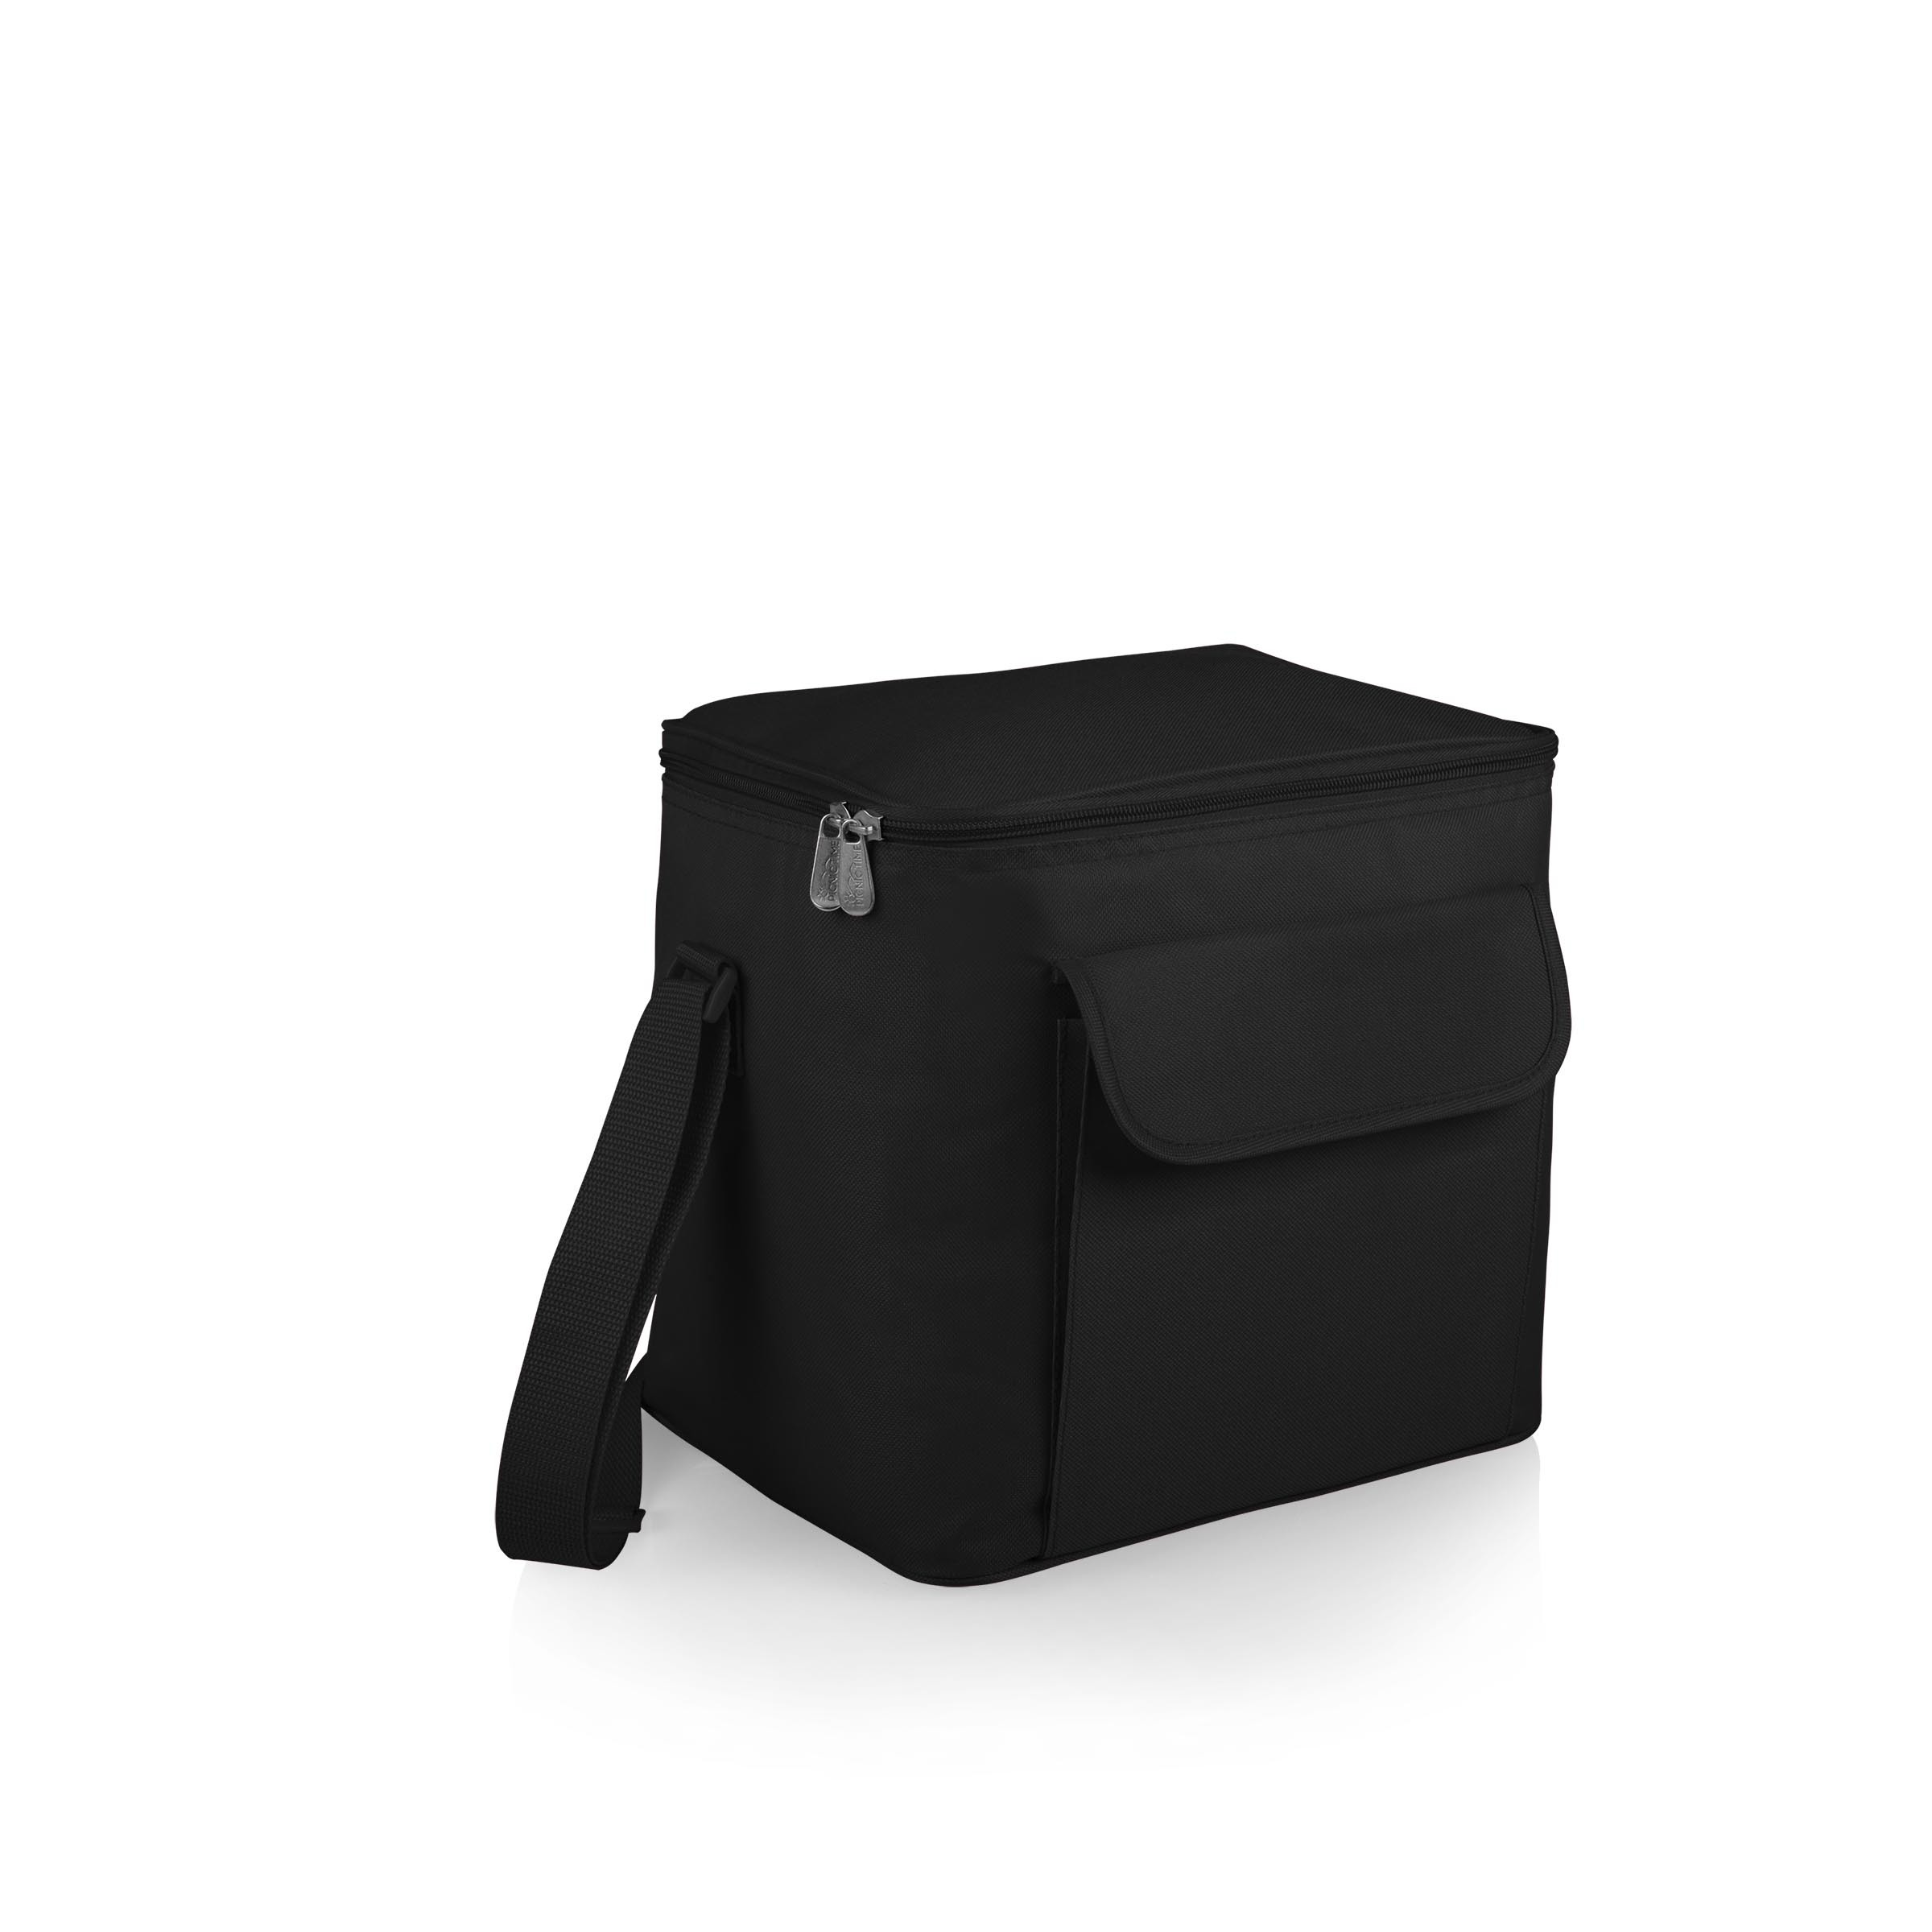 Picnic Time Aero 27-Can Capacity Insulated Cooler Tote, Black